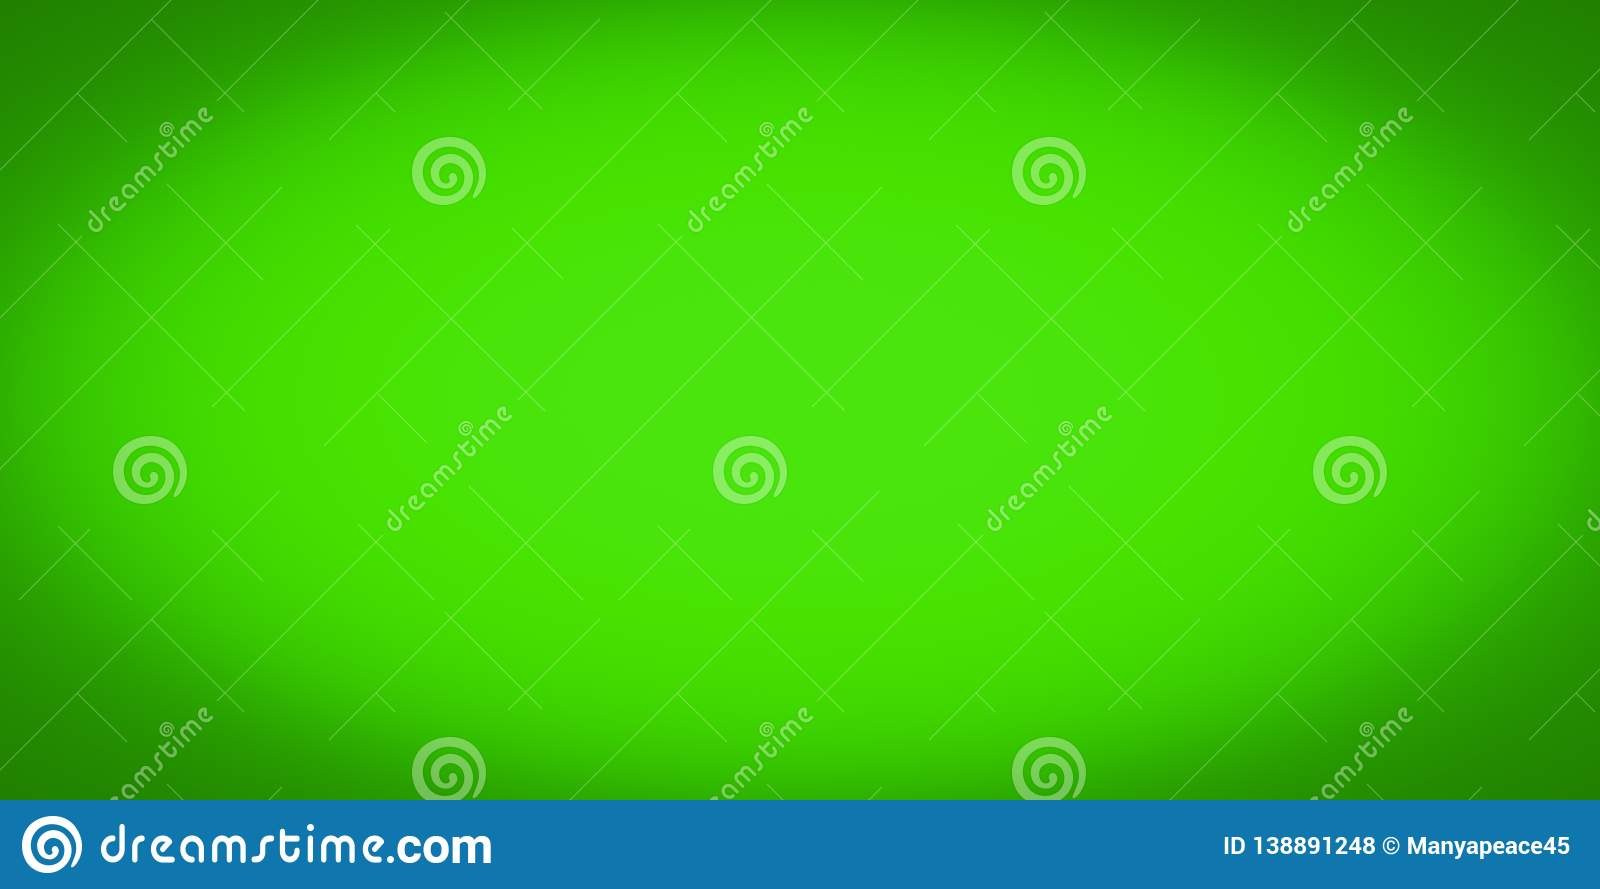 Green Background Green Green Screen Screen Blank Screen Movie Theater Stock Photo Image Of Inscription Screen 138891248